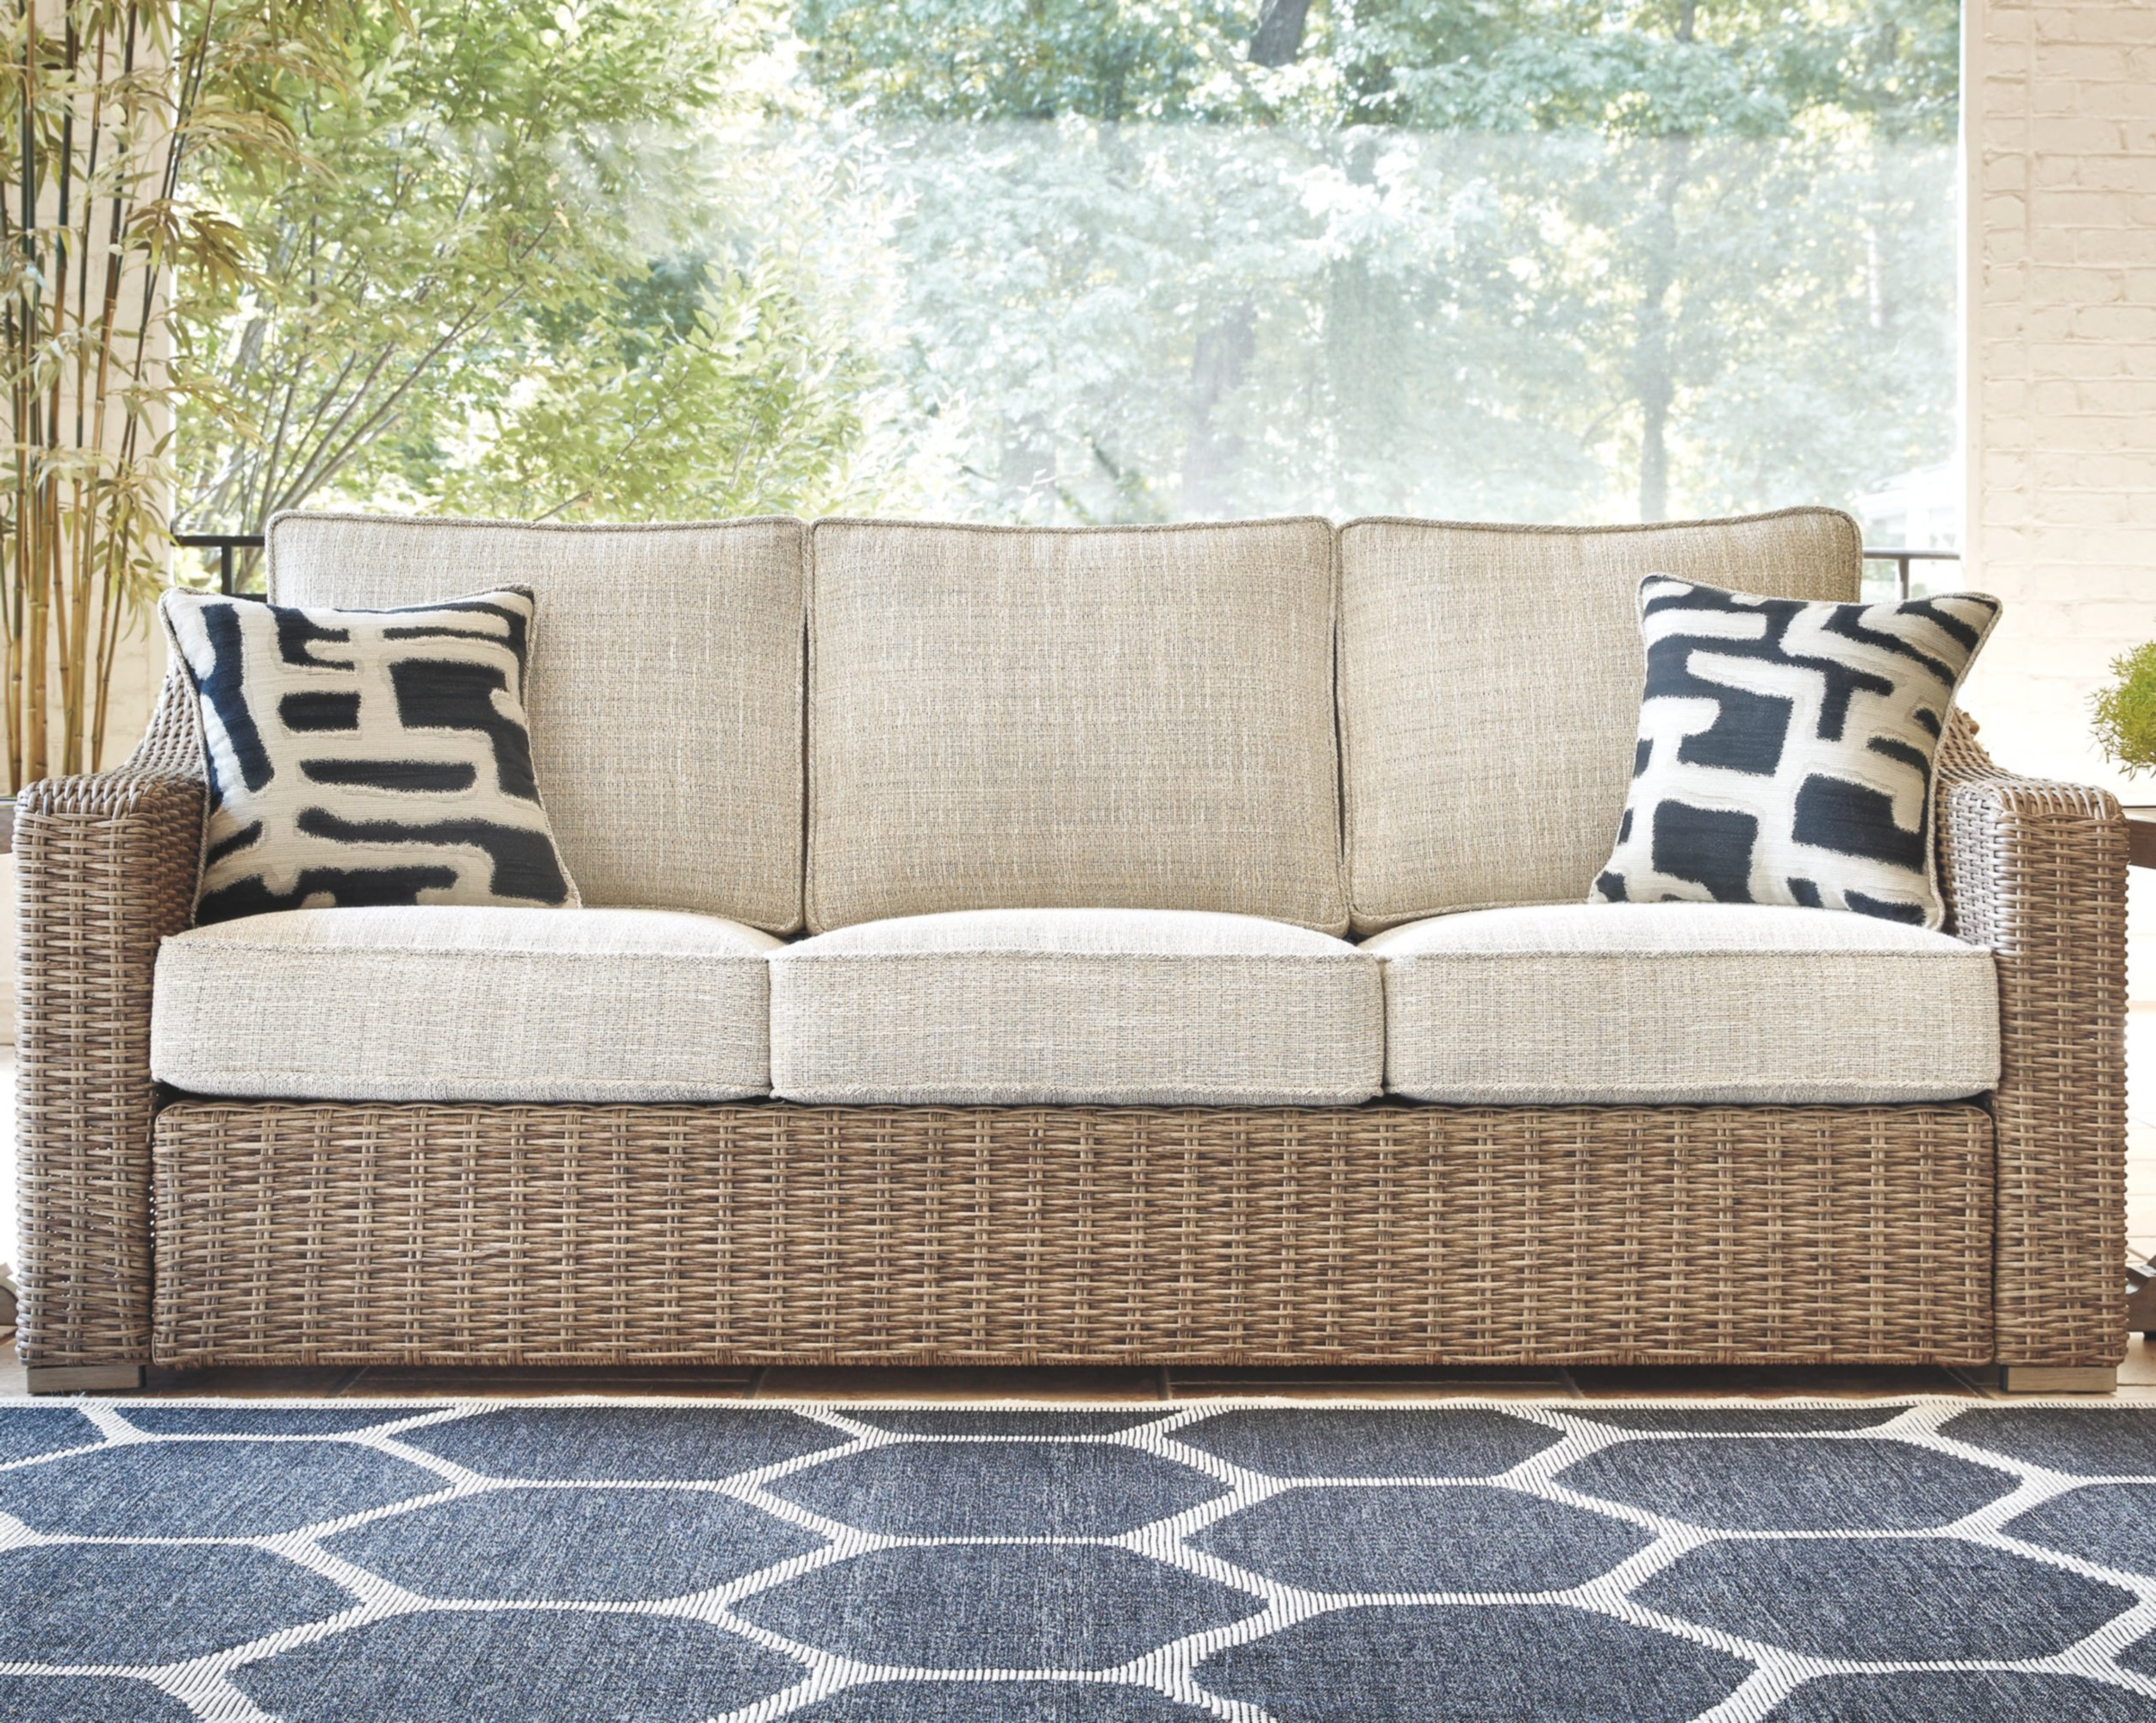 Keever Patio Sofas With Sunbrella Cushions Pertaining To Well Liked Farmersville Patio Sofa With Cushions (View 10 of 20)